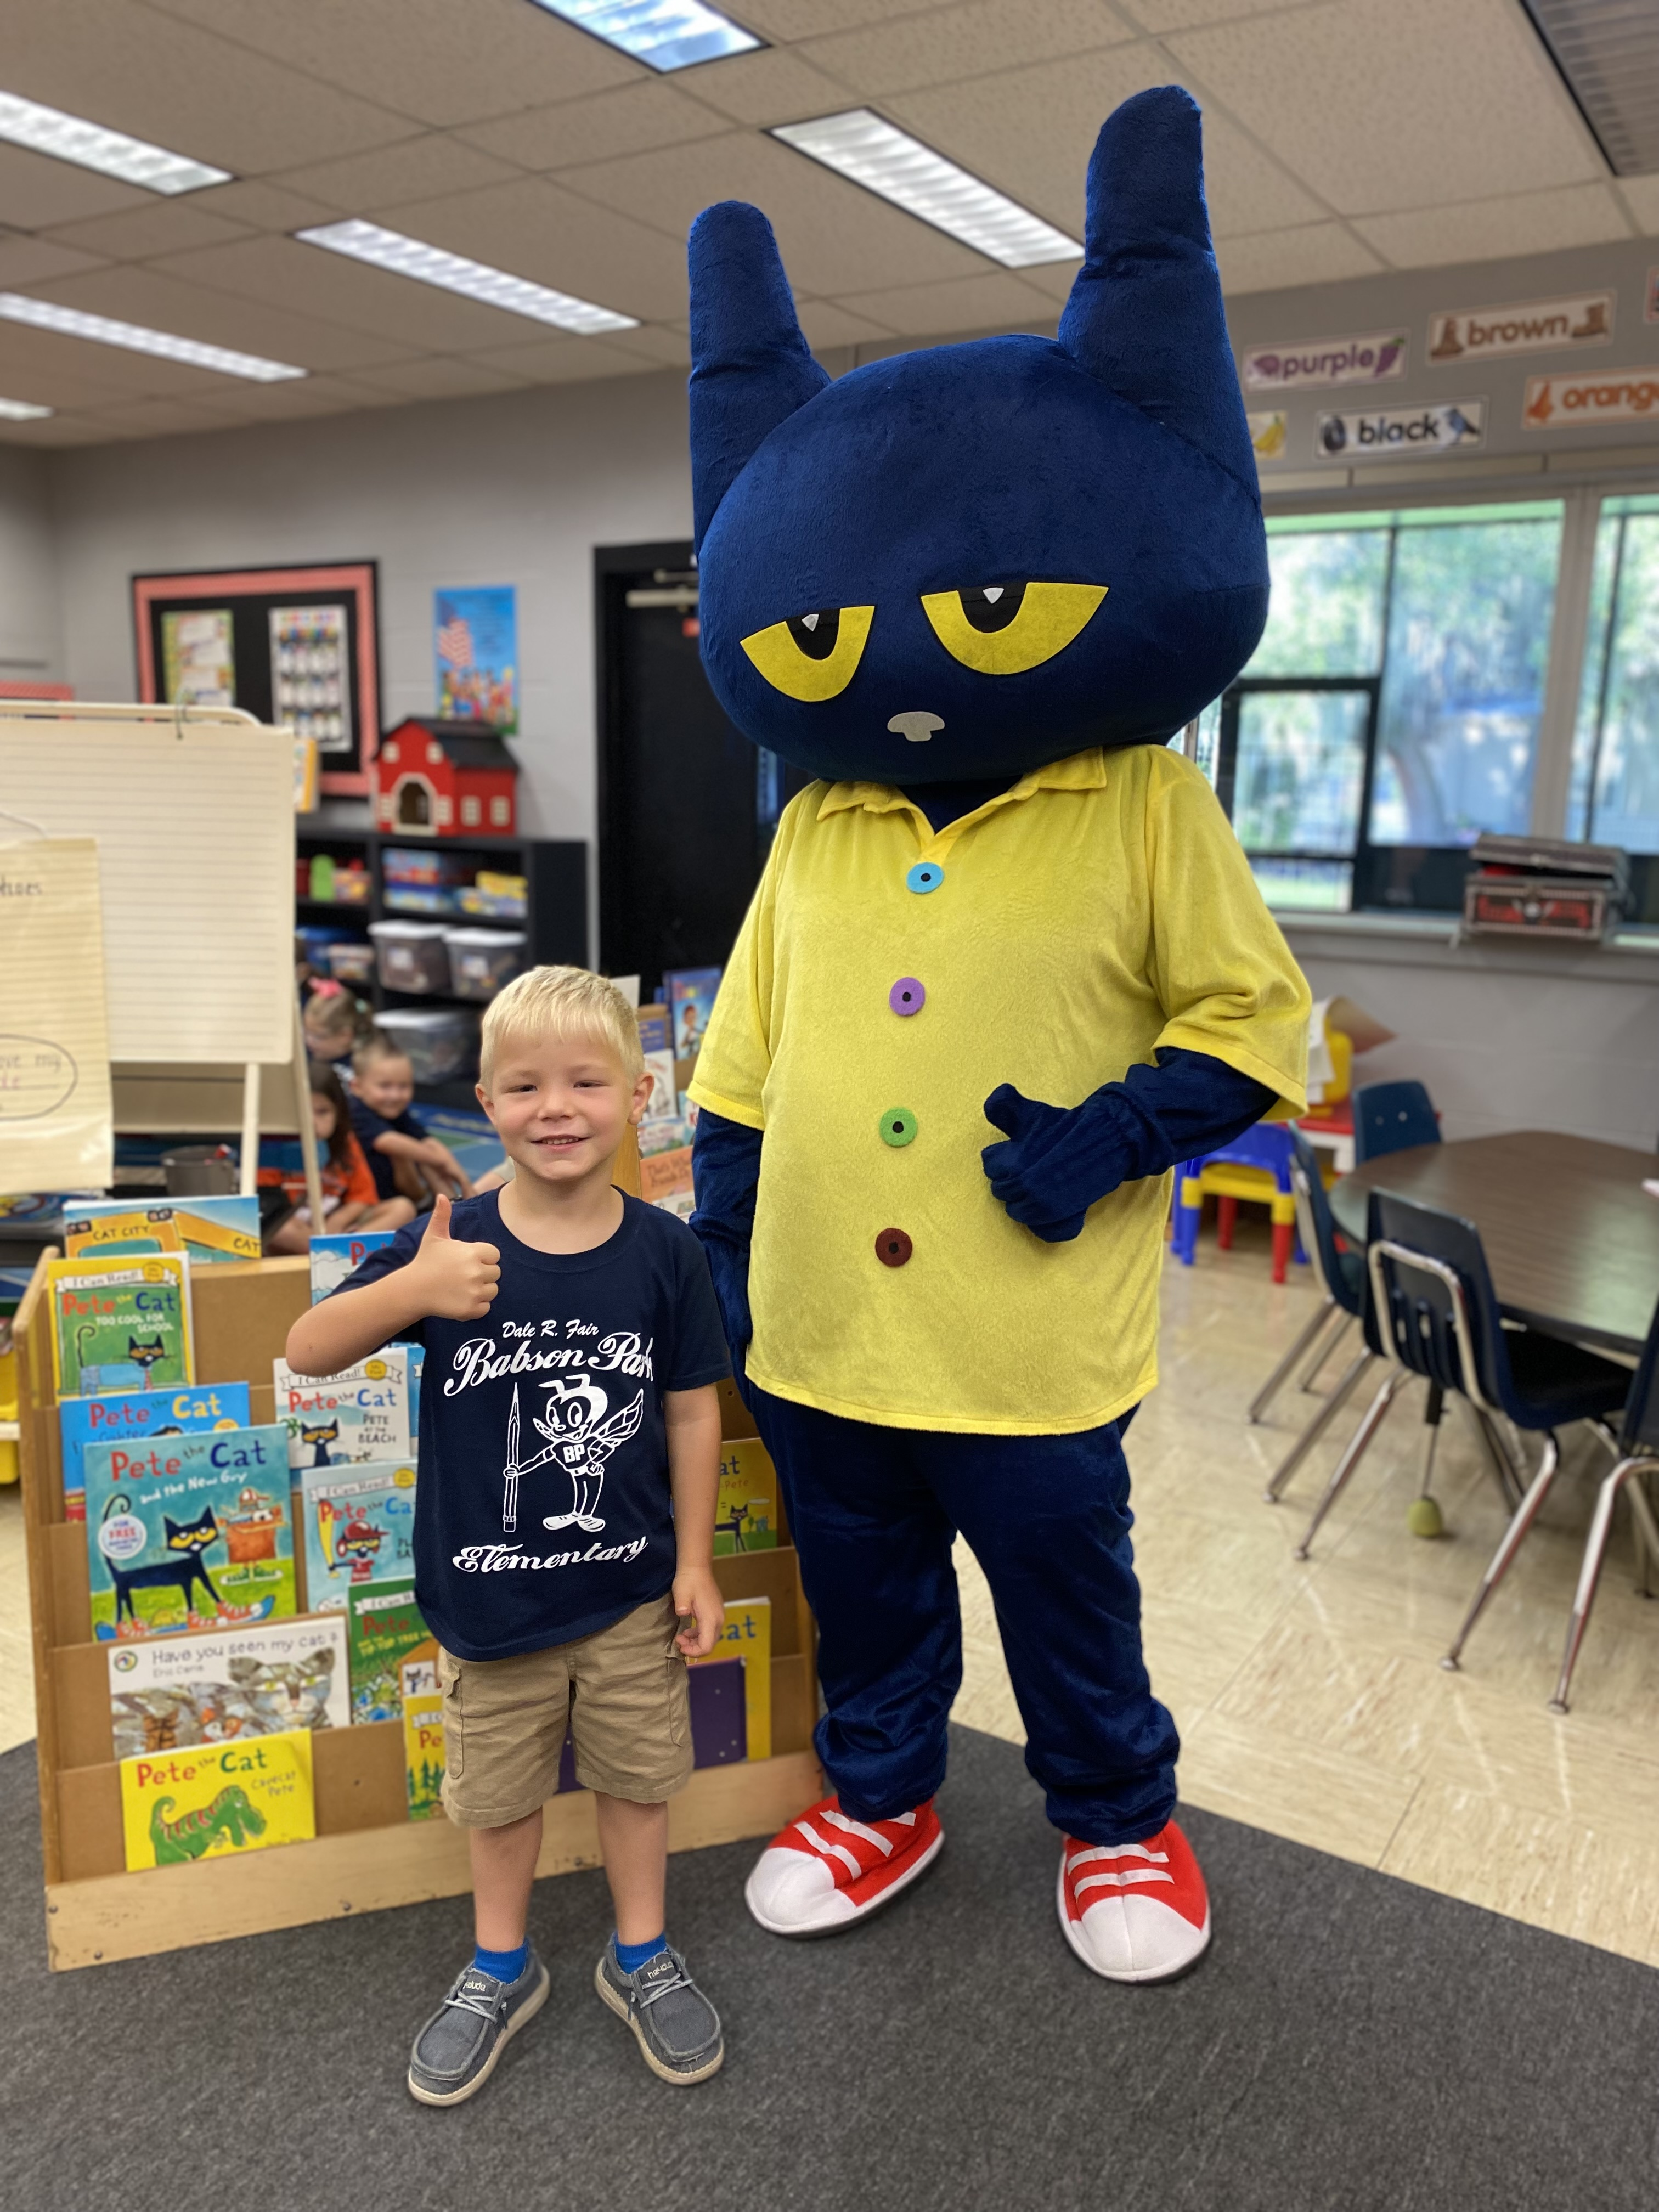 Pete the Cat visiting with a Kindergarten Gnat.